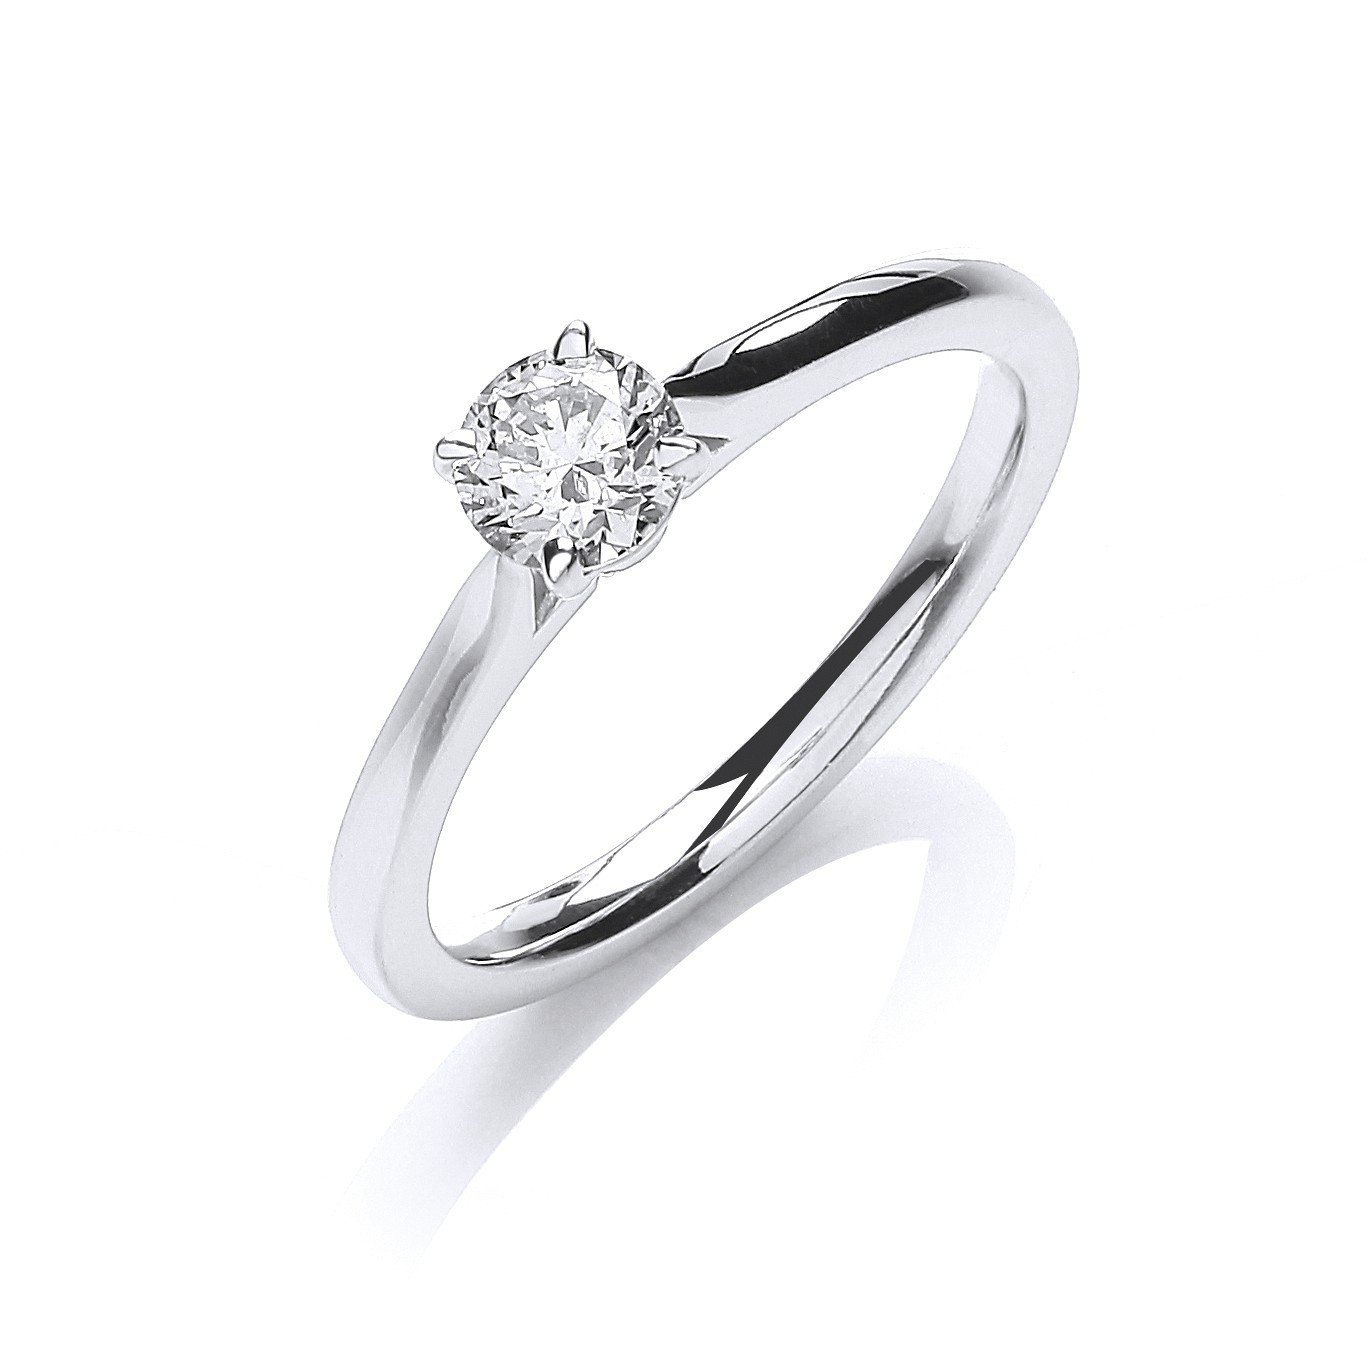 18ct White Gold 0.40ct Certificated Solitaire Ring